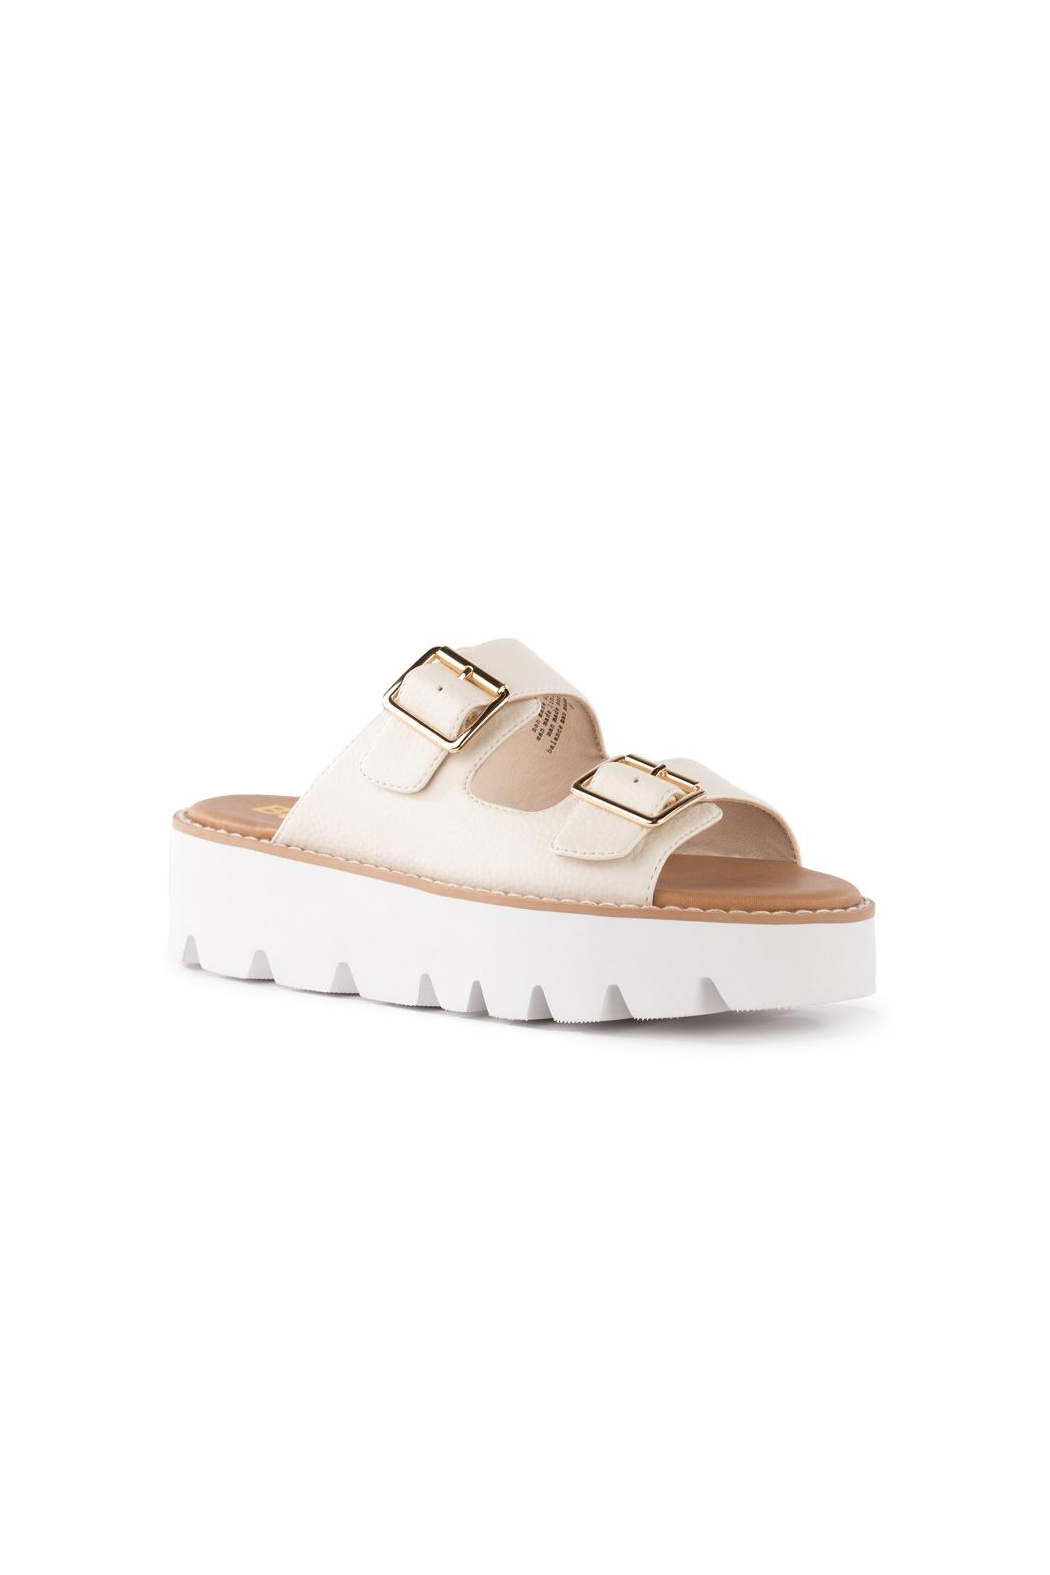 BC Footwear Hand To Hold Sandal - Front Full Image